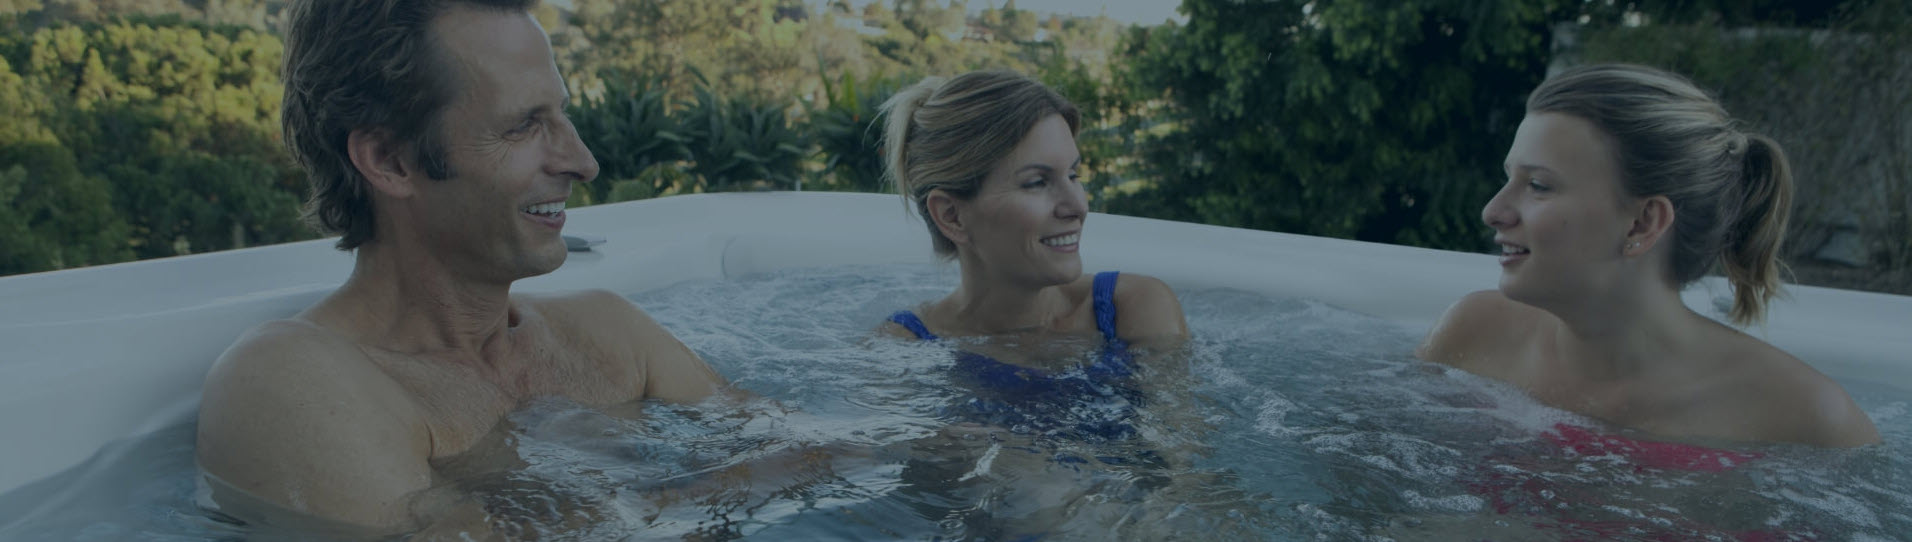 3 Ways to Health and Wellness with a Hot Tub at Home, Spa Stores Near Plymouth MN